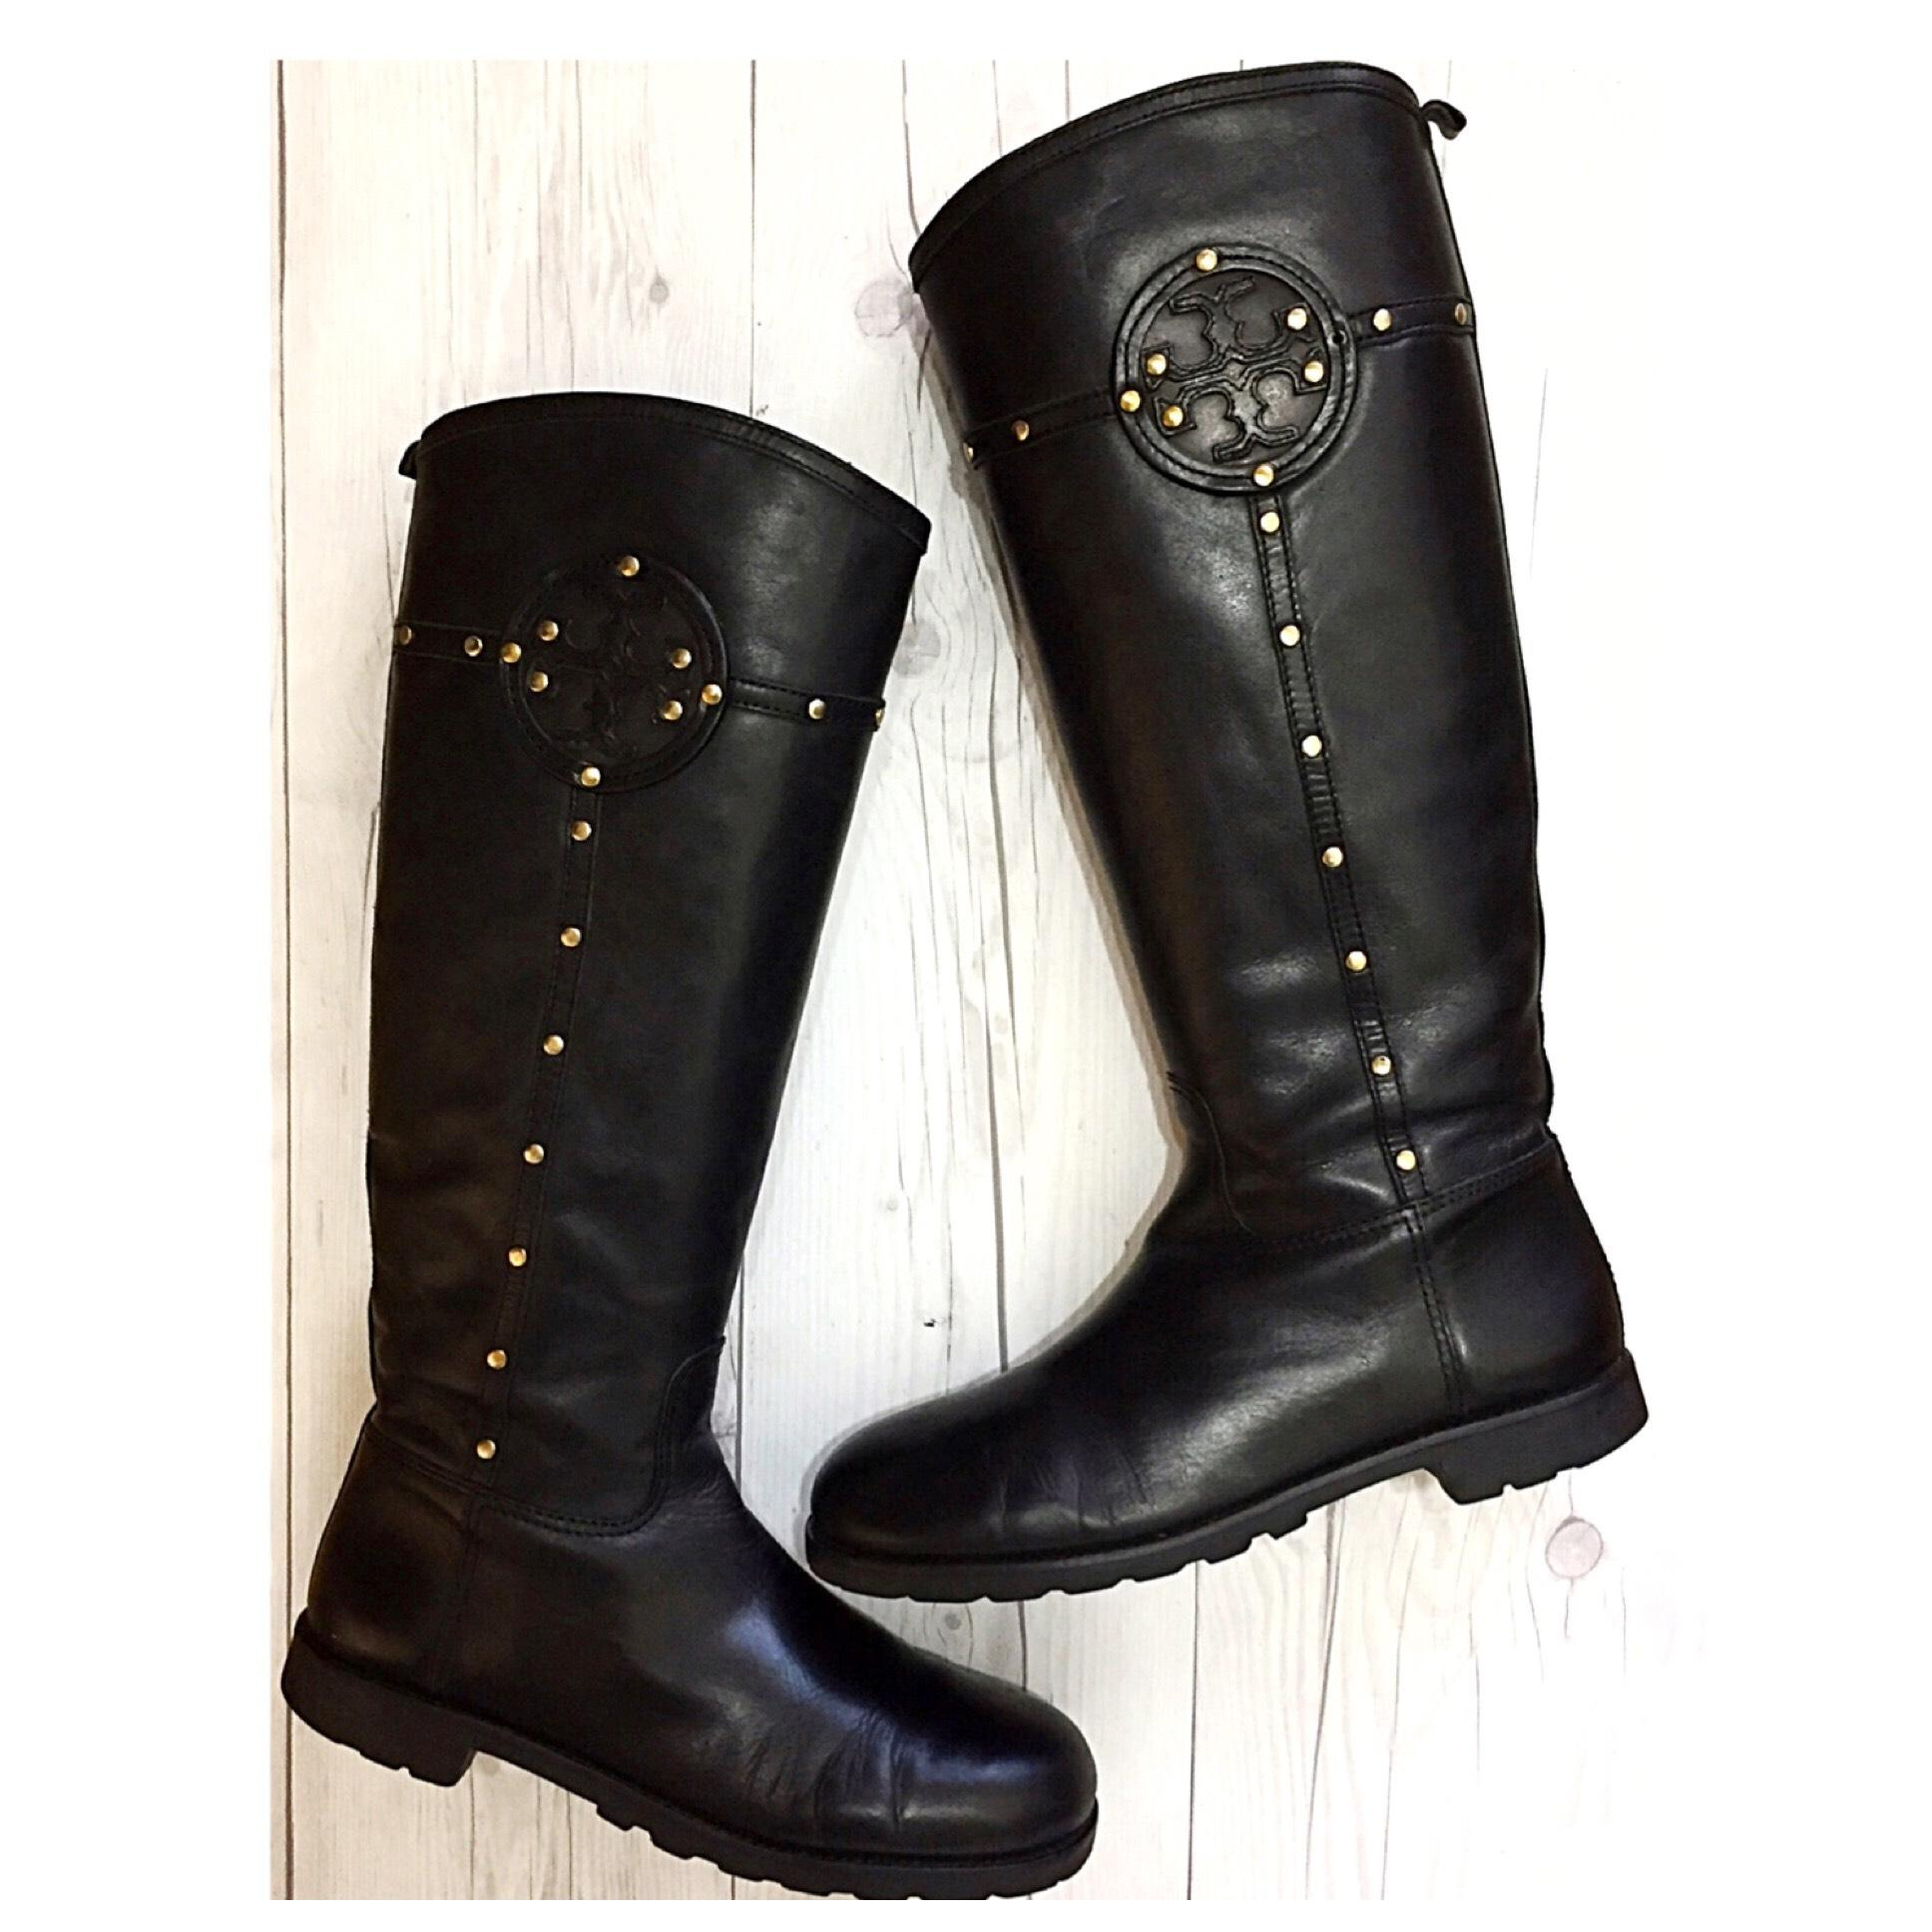 3c76dbf0819 Tory Burch Black Colleen Colleen Colleen Studded Logo Leather Knee High  Riding Boots Booties Size US 9.5 Regular (M